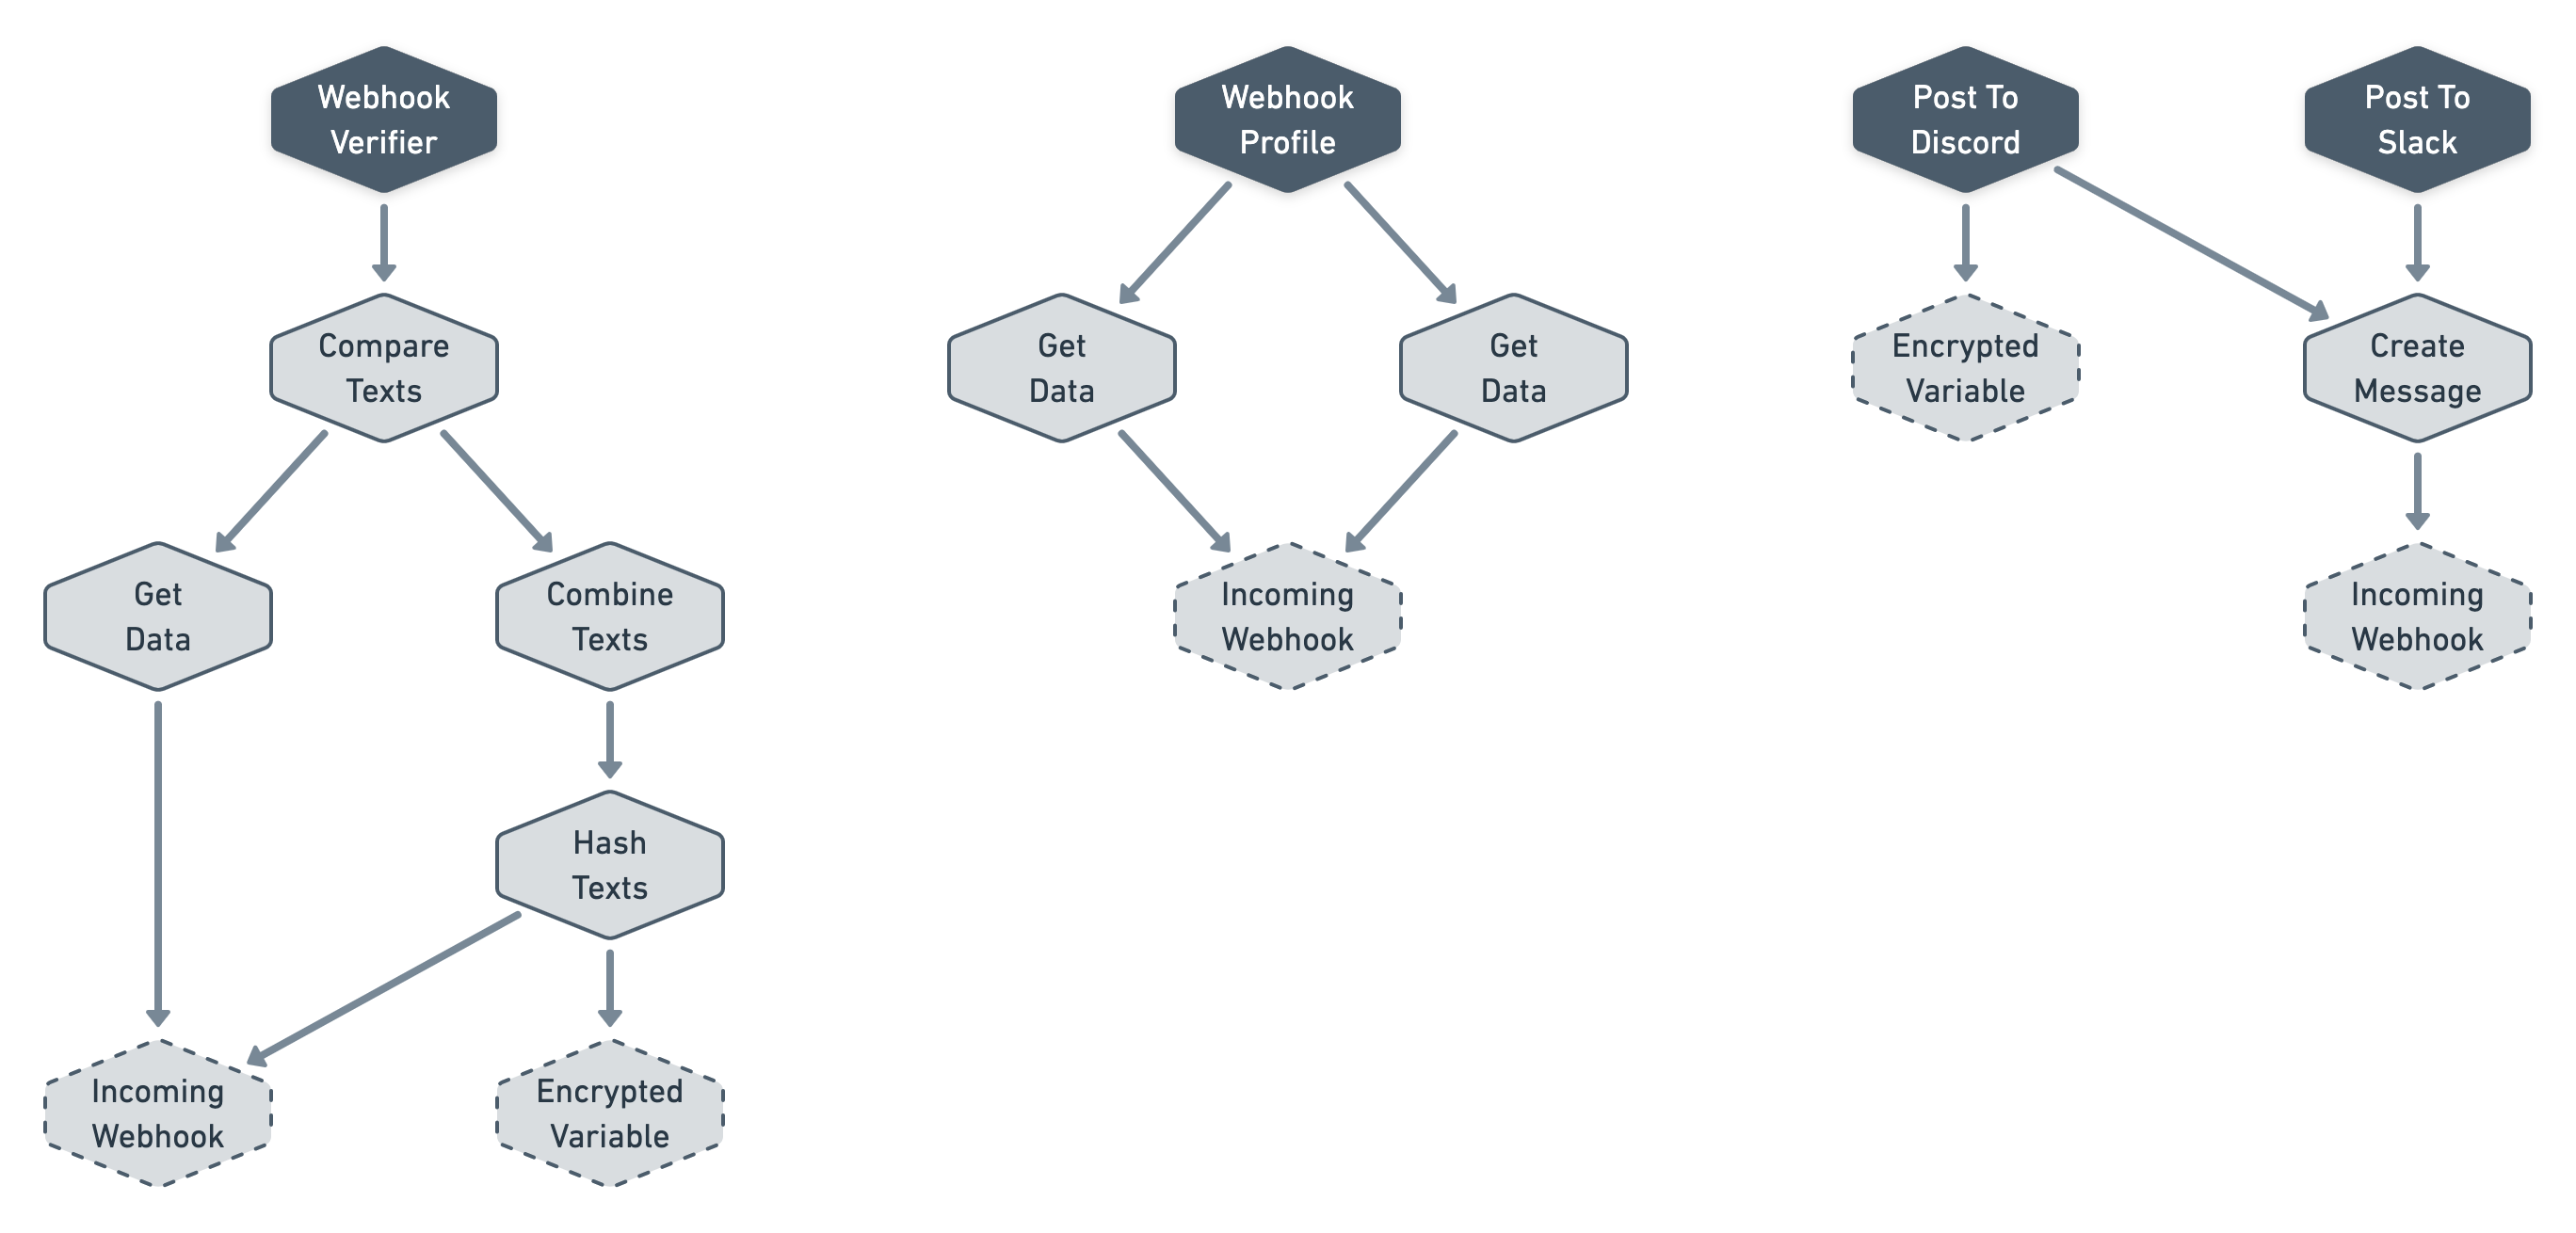 Diagram of the same webhook workflow in the screenshot above